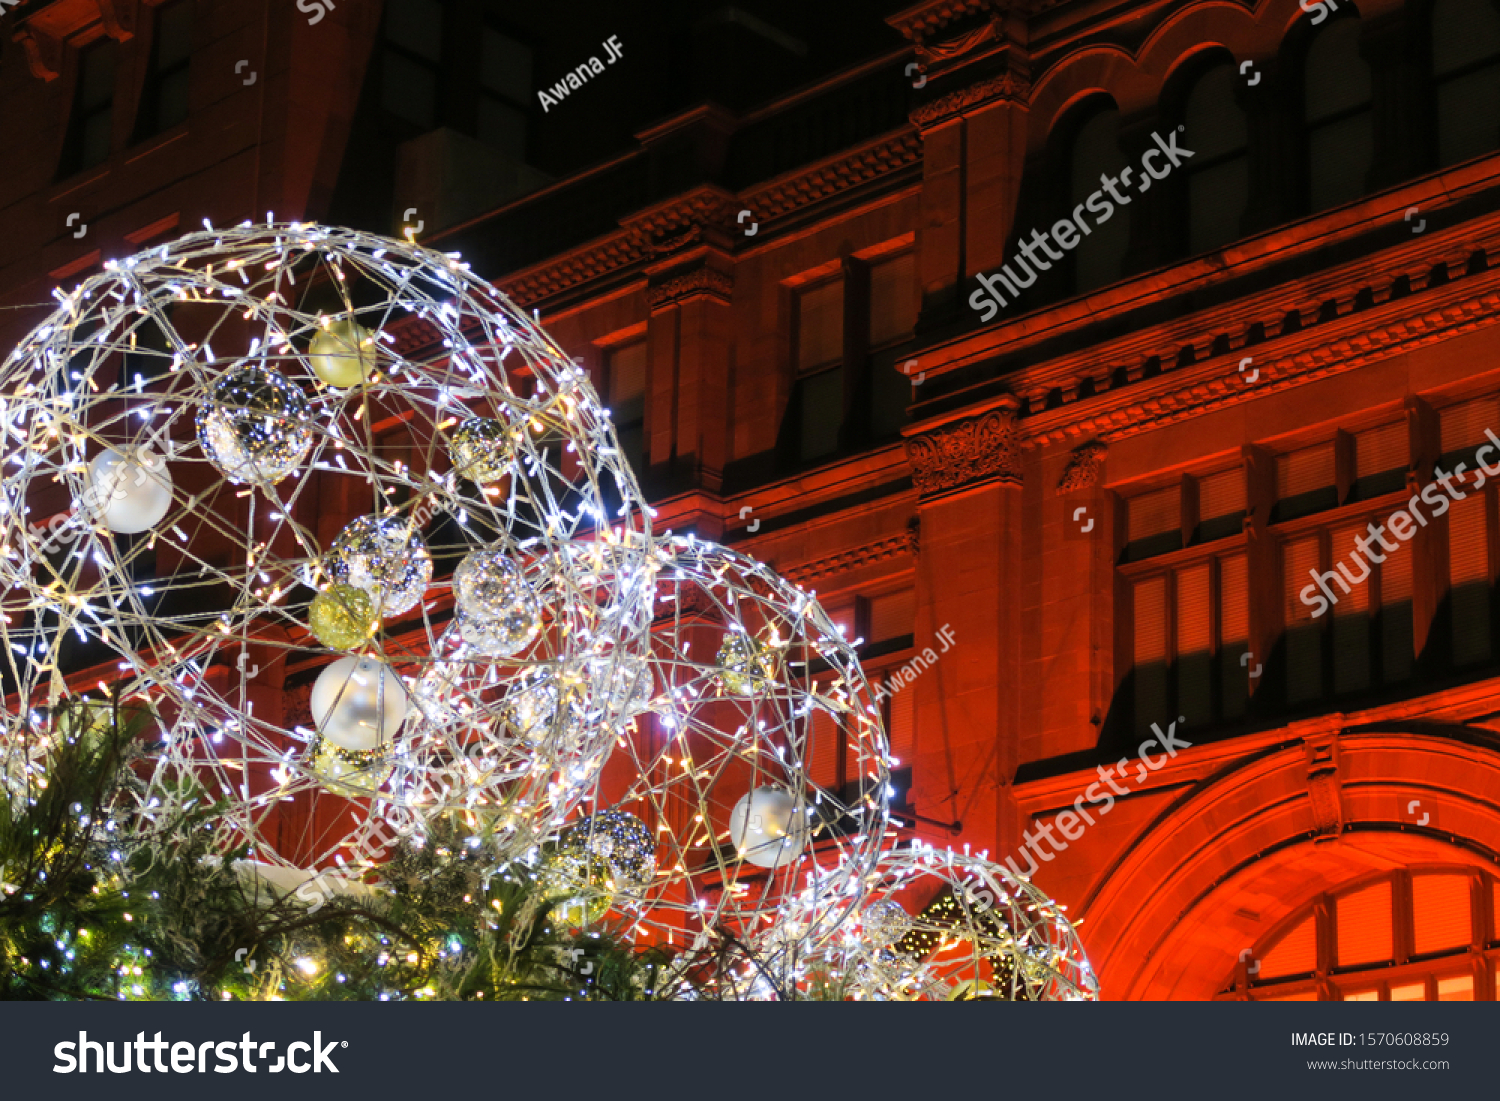 stock-photo-outdoors-christmas-lights-an